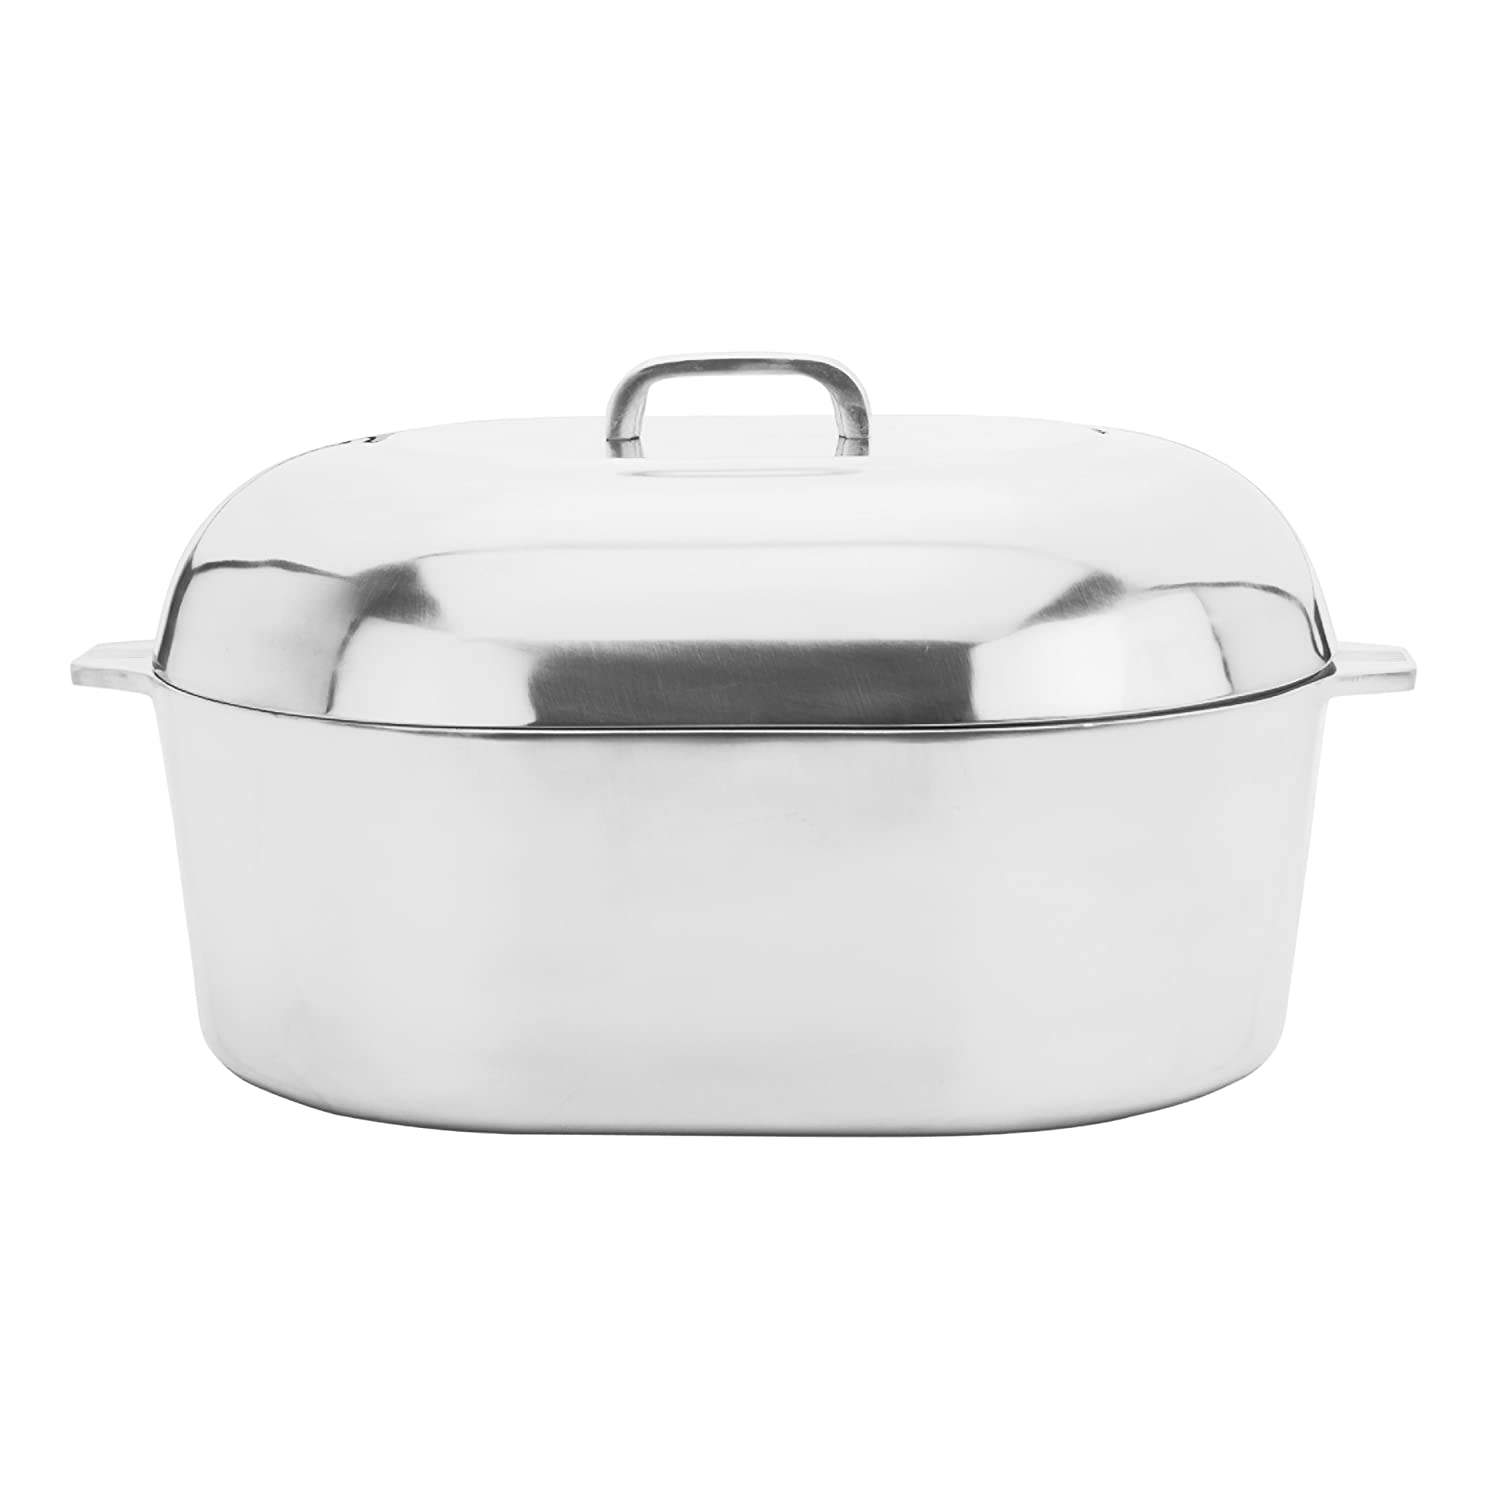 Magnalite Classic 15-Inch Oval Covered Roaster 1040828